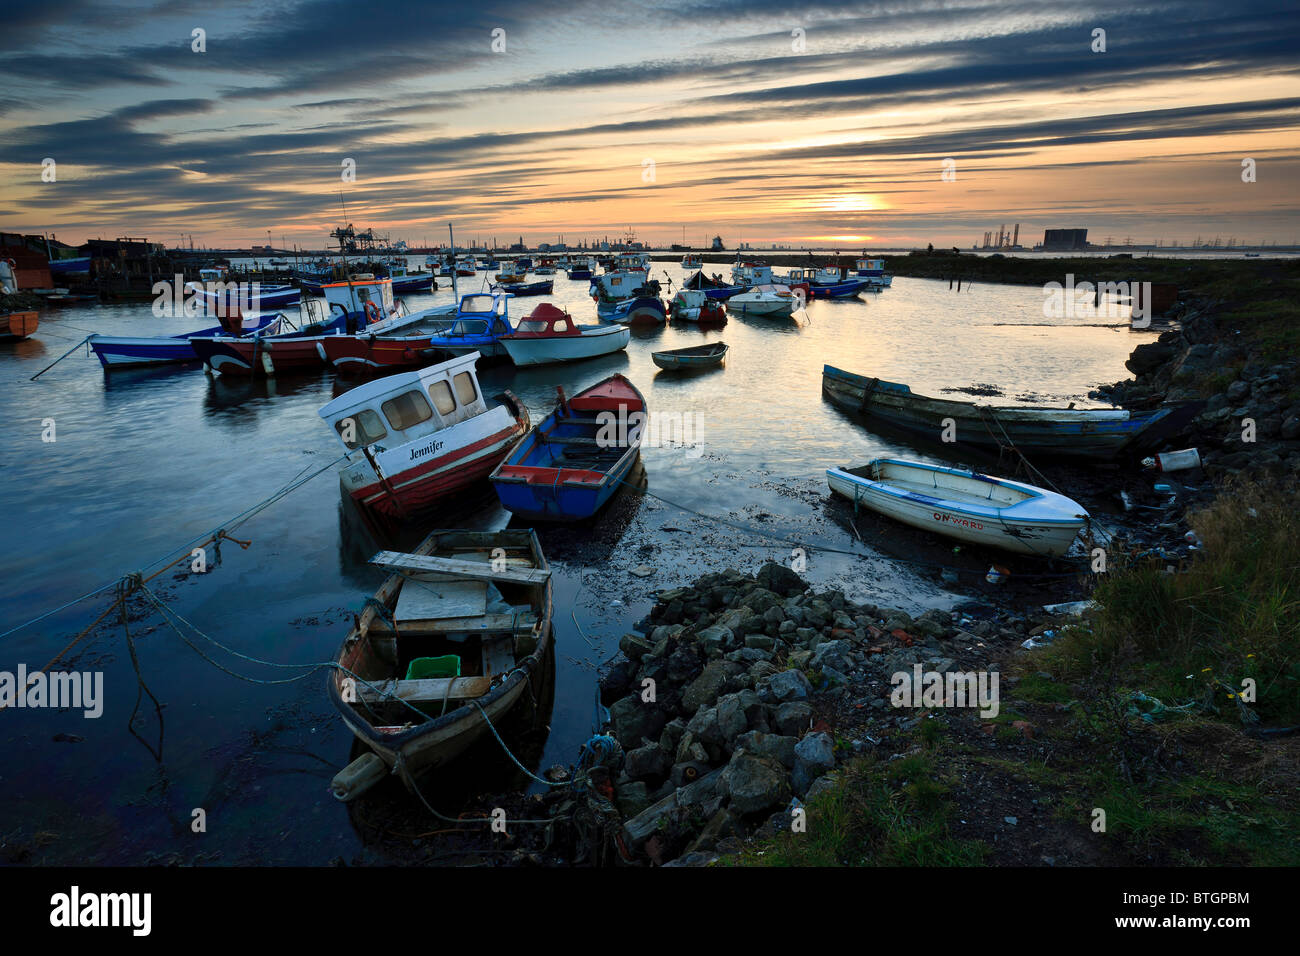 October sunset at Paddy's Hole, South Gare, Teesmouth - Stock Image